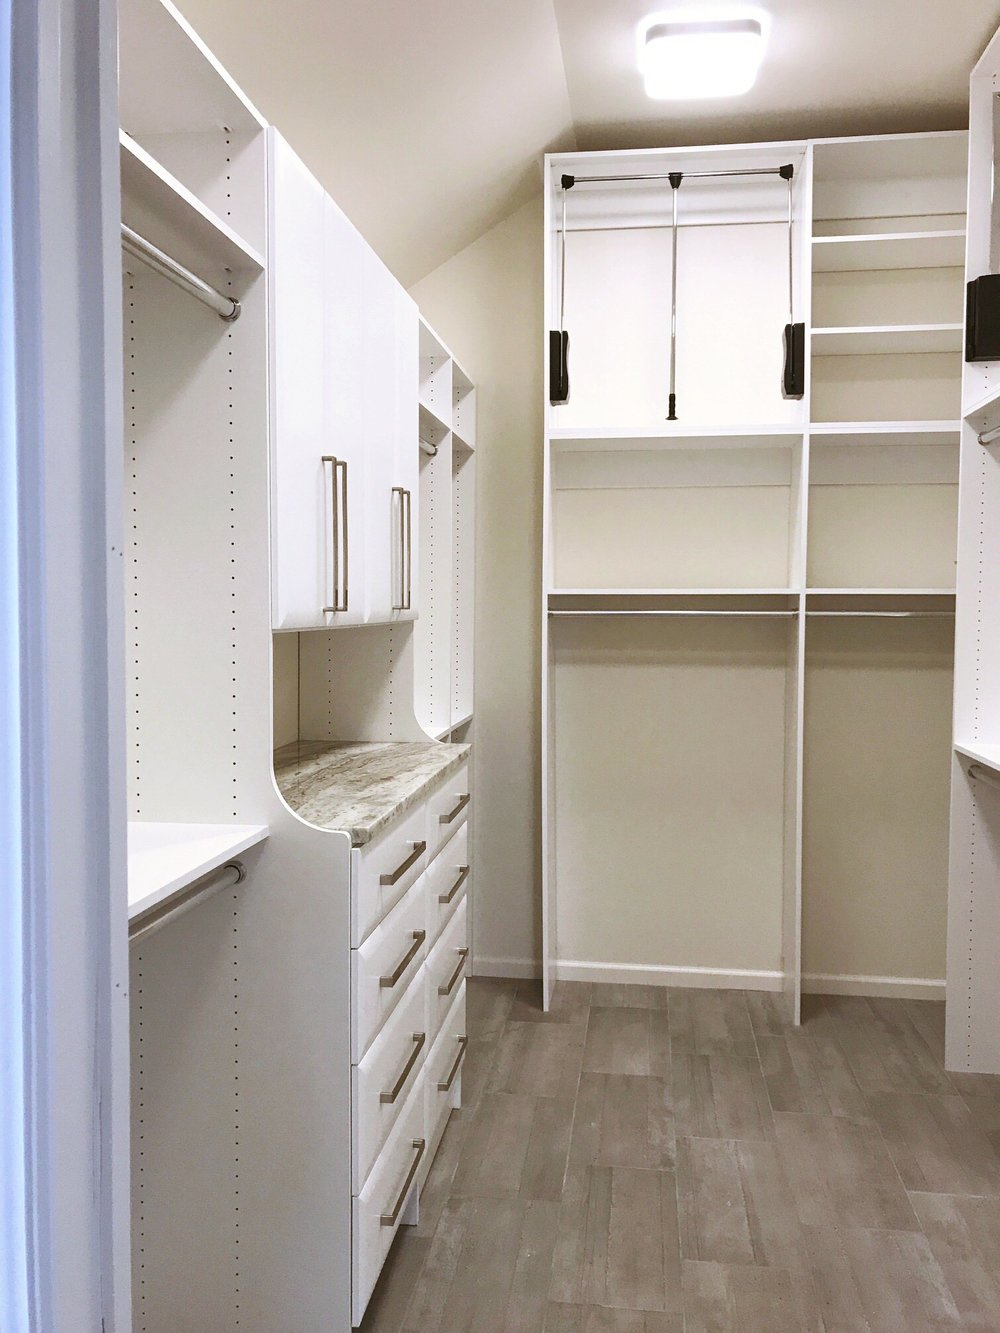 This Custom Closet Organizer By Closets Of Tulsa Features A Dresser Sized  Built In